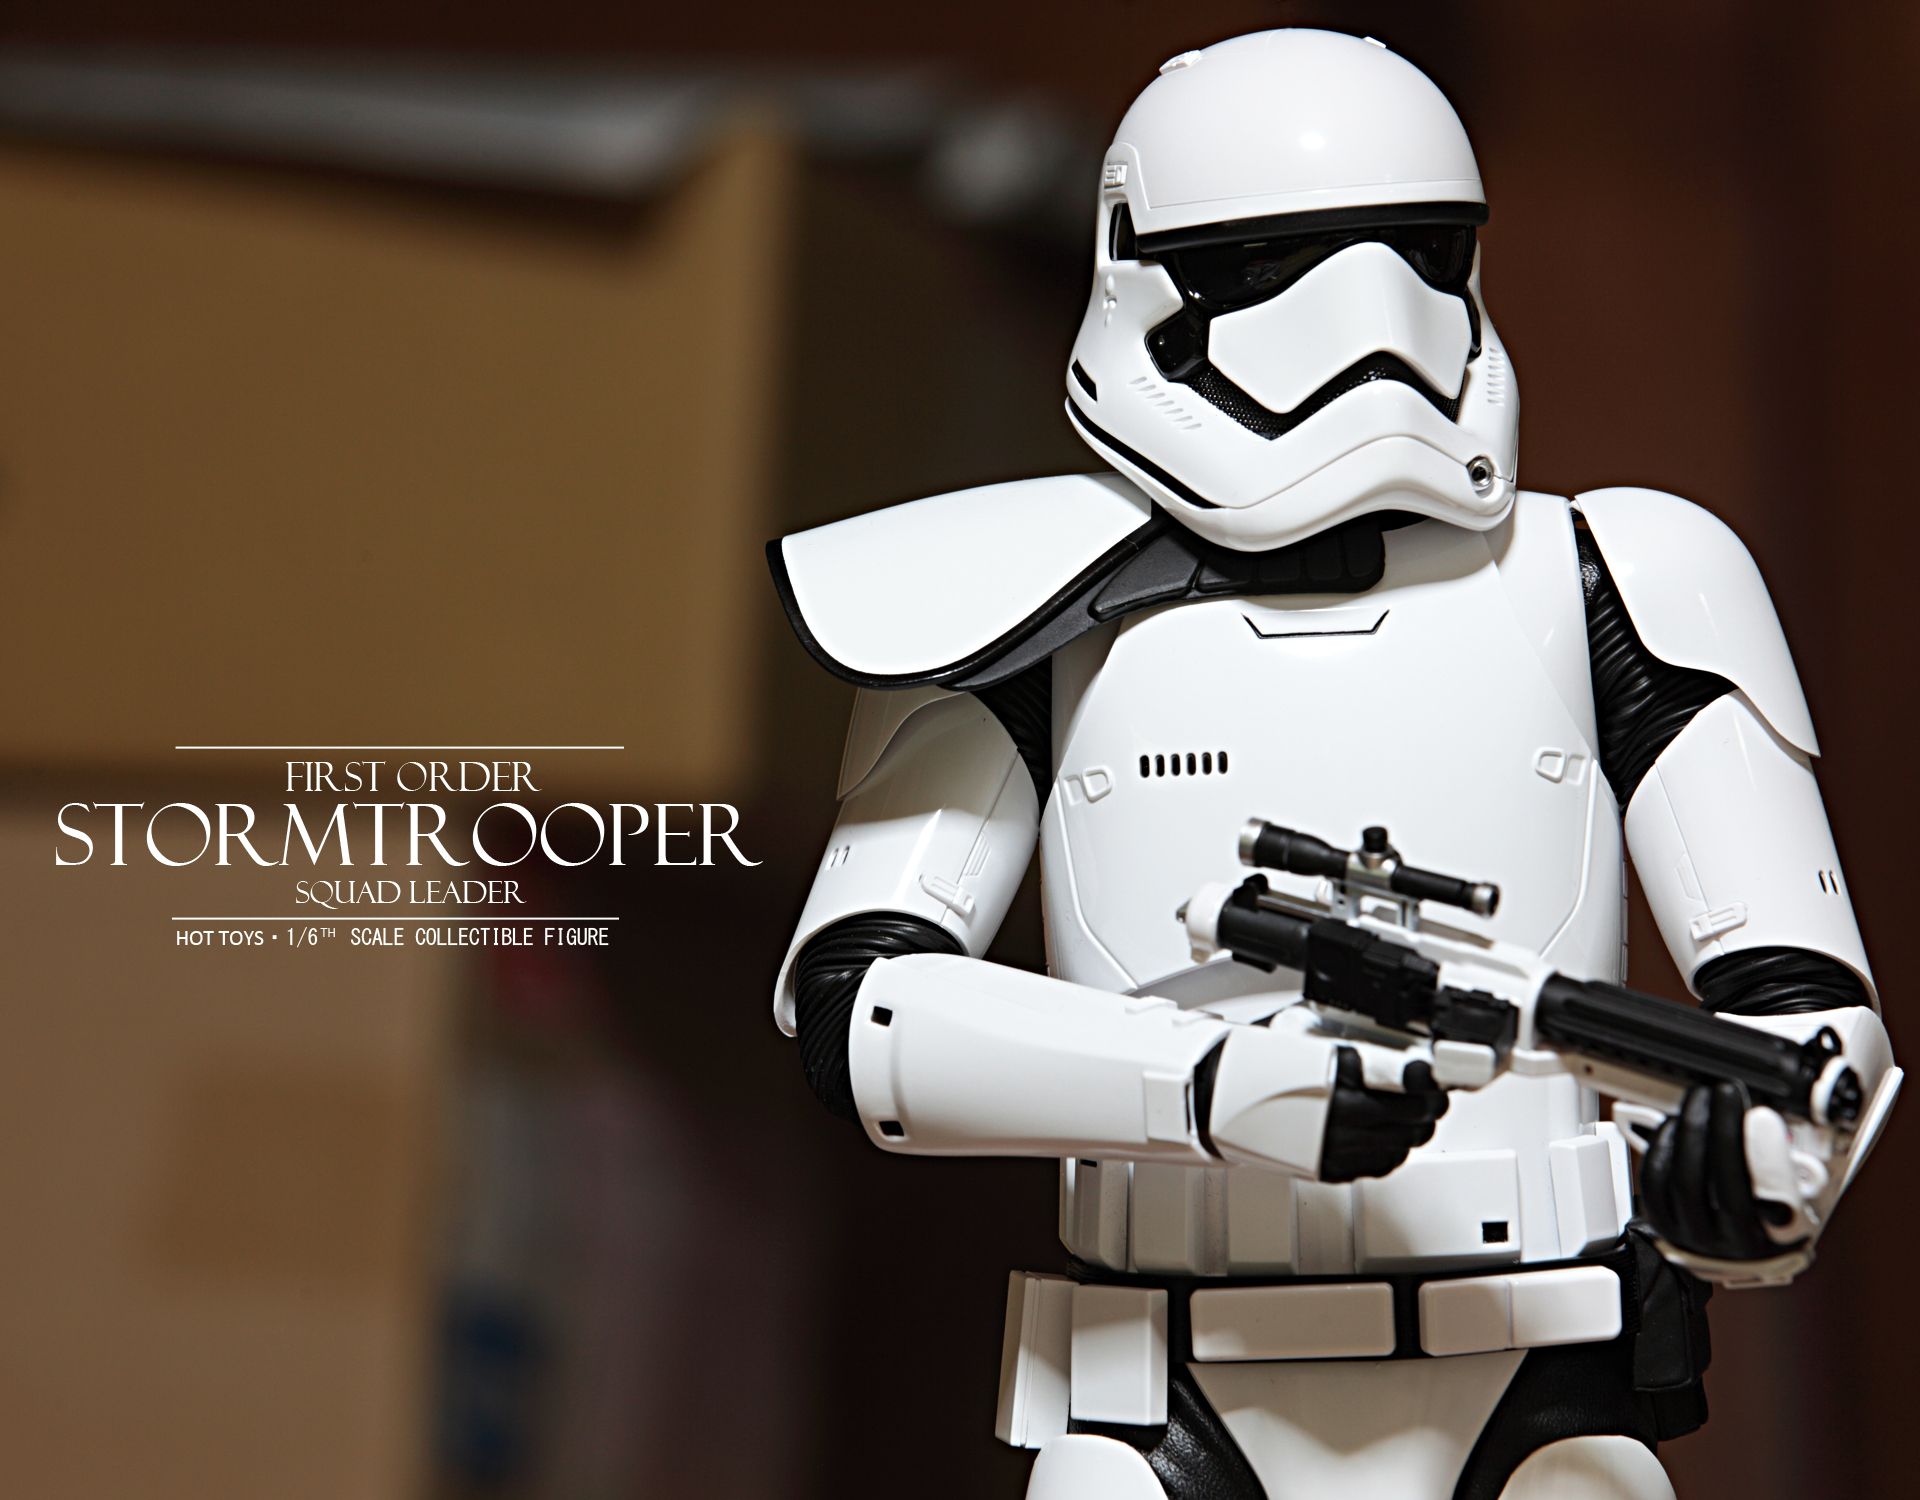 hottoys-star-wars-the-force-awakens-first-order-stormtrooper-Squad-Leader-picture01hottoys-star-wars-the-force-awakens-first-order-stormtrooper-Squad-Leader-picture06